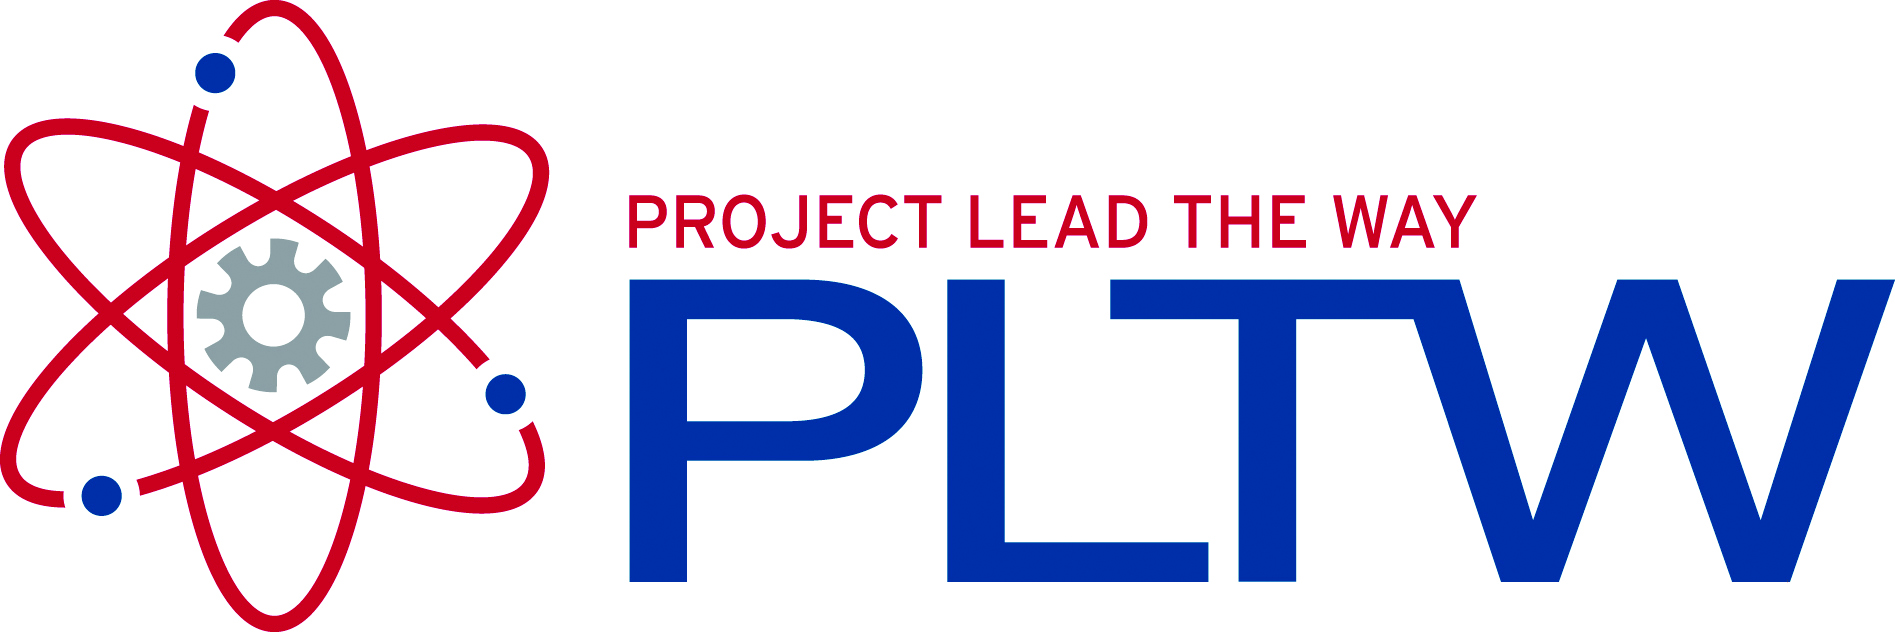 Projet Lead the Way